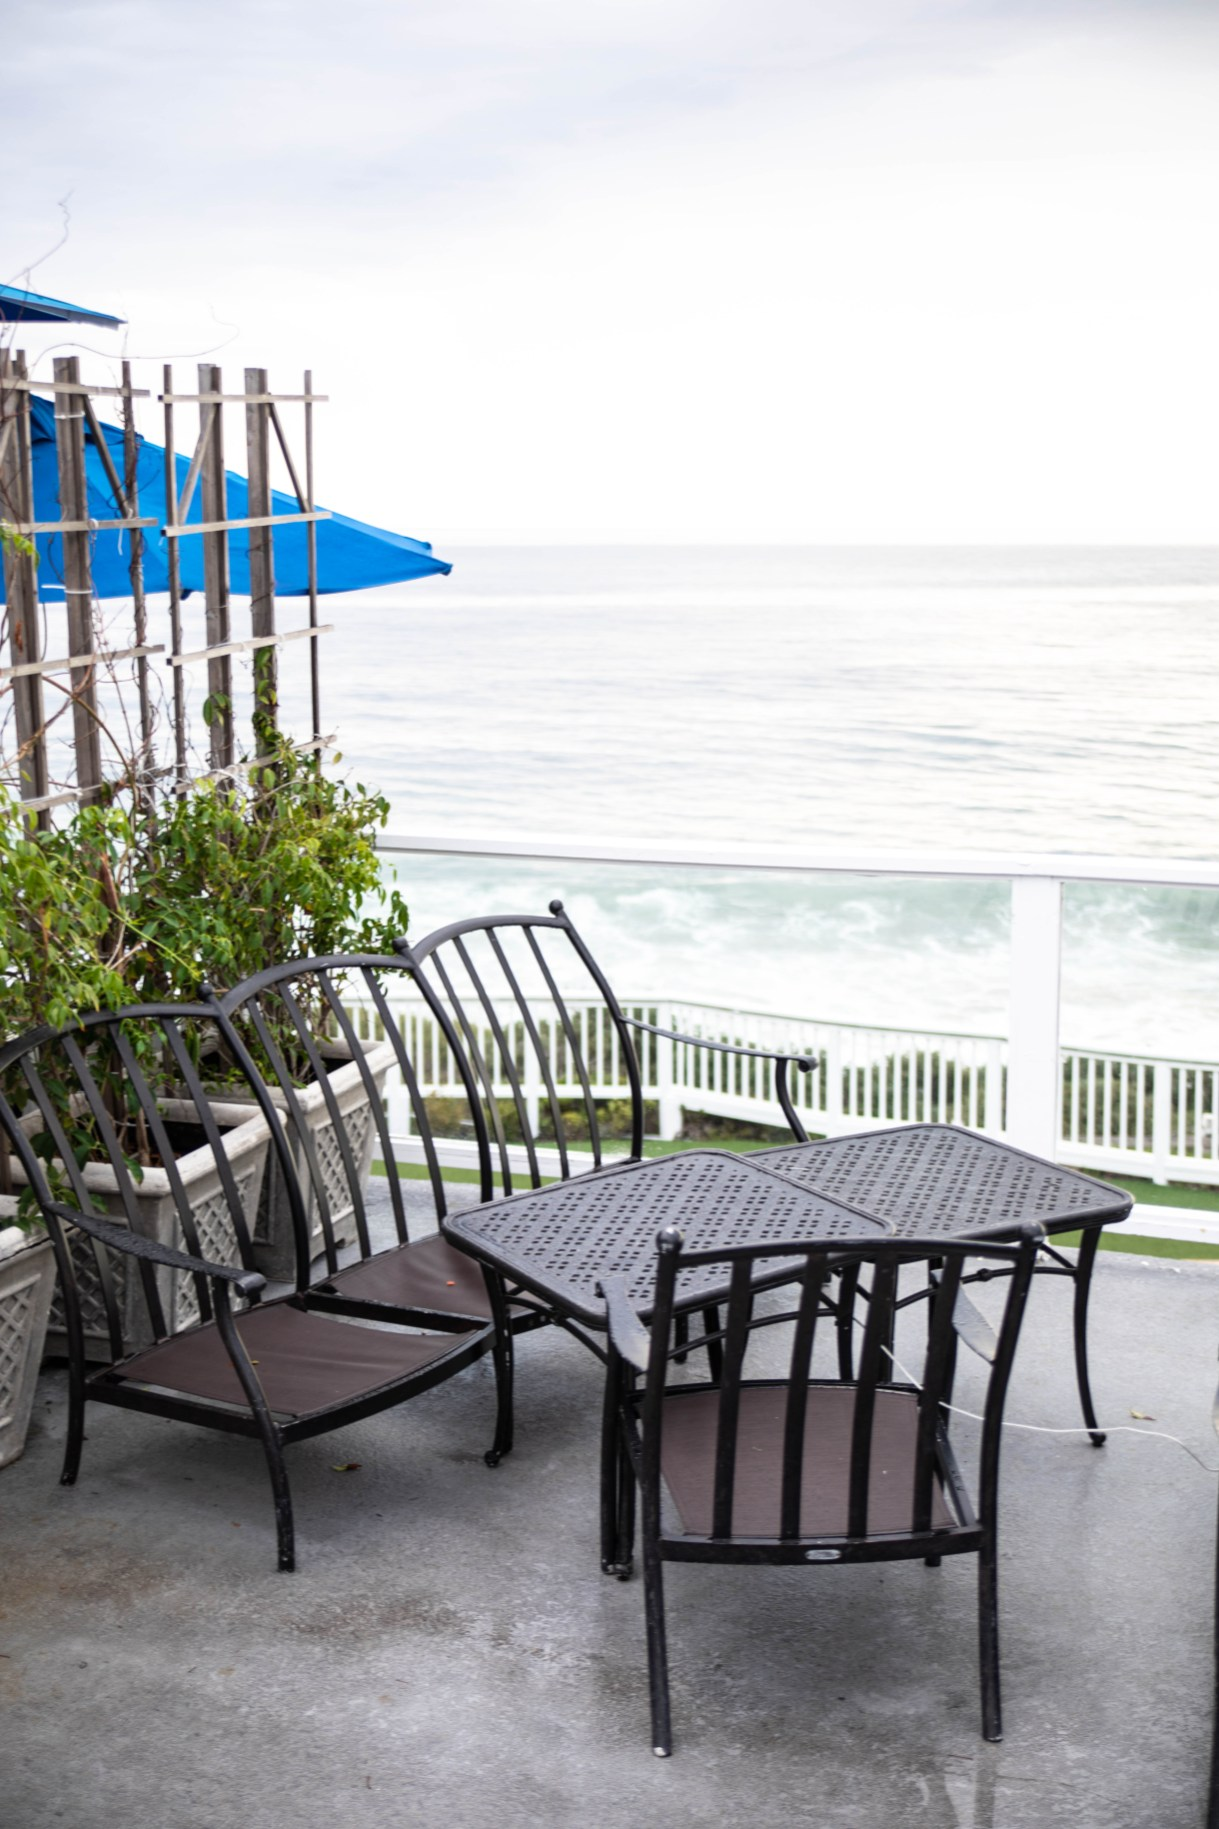 Luxury Restaurants of the World: The Cliffs in Laguna Beach